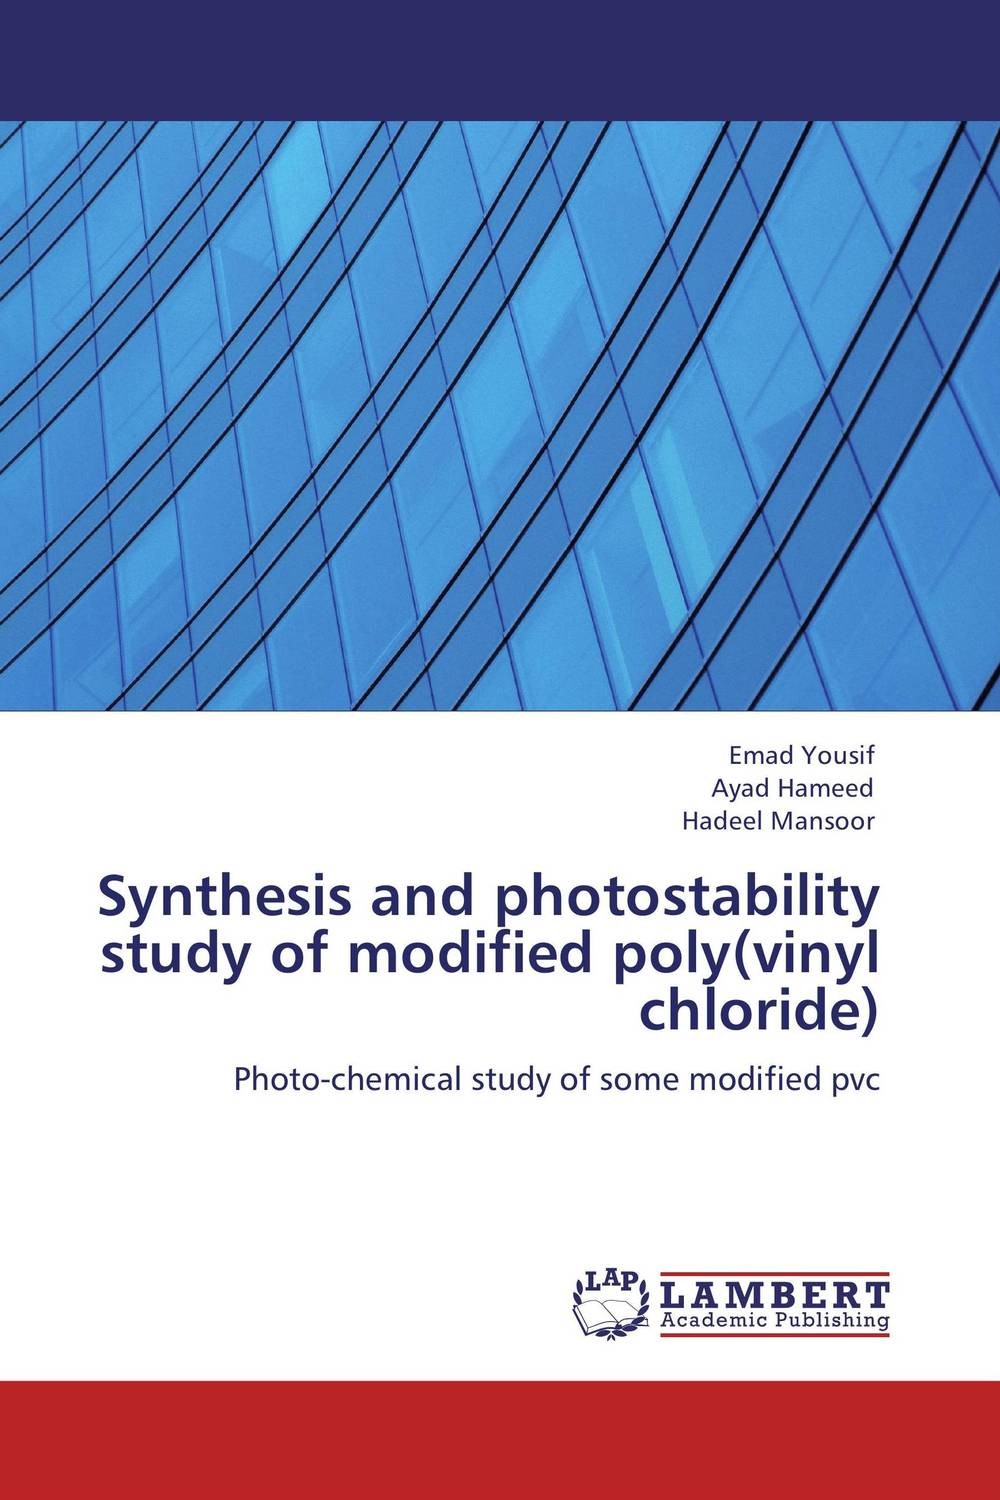 Synthesis and photostability study of modified poly(vinyl chloride) modified pnas synthesis and interaction studies with dna